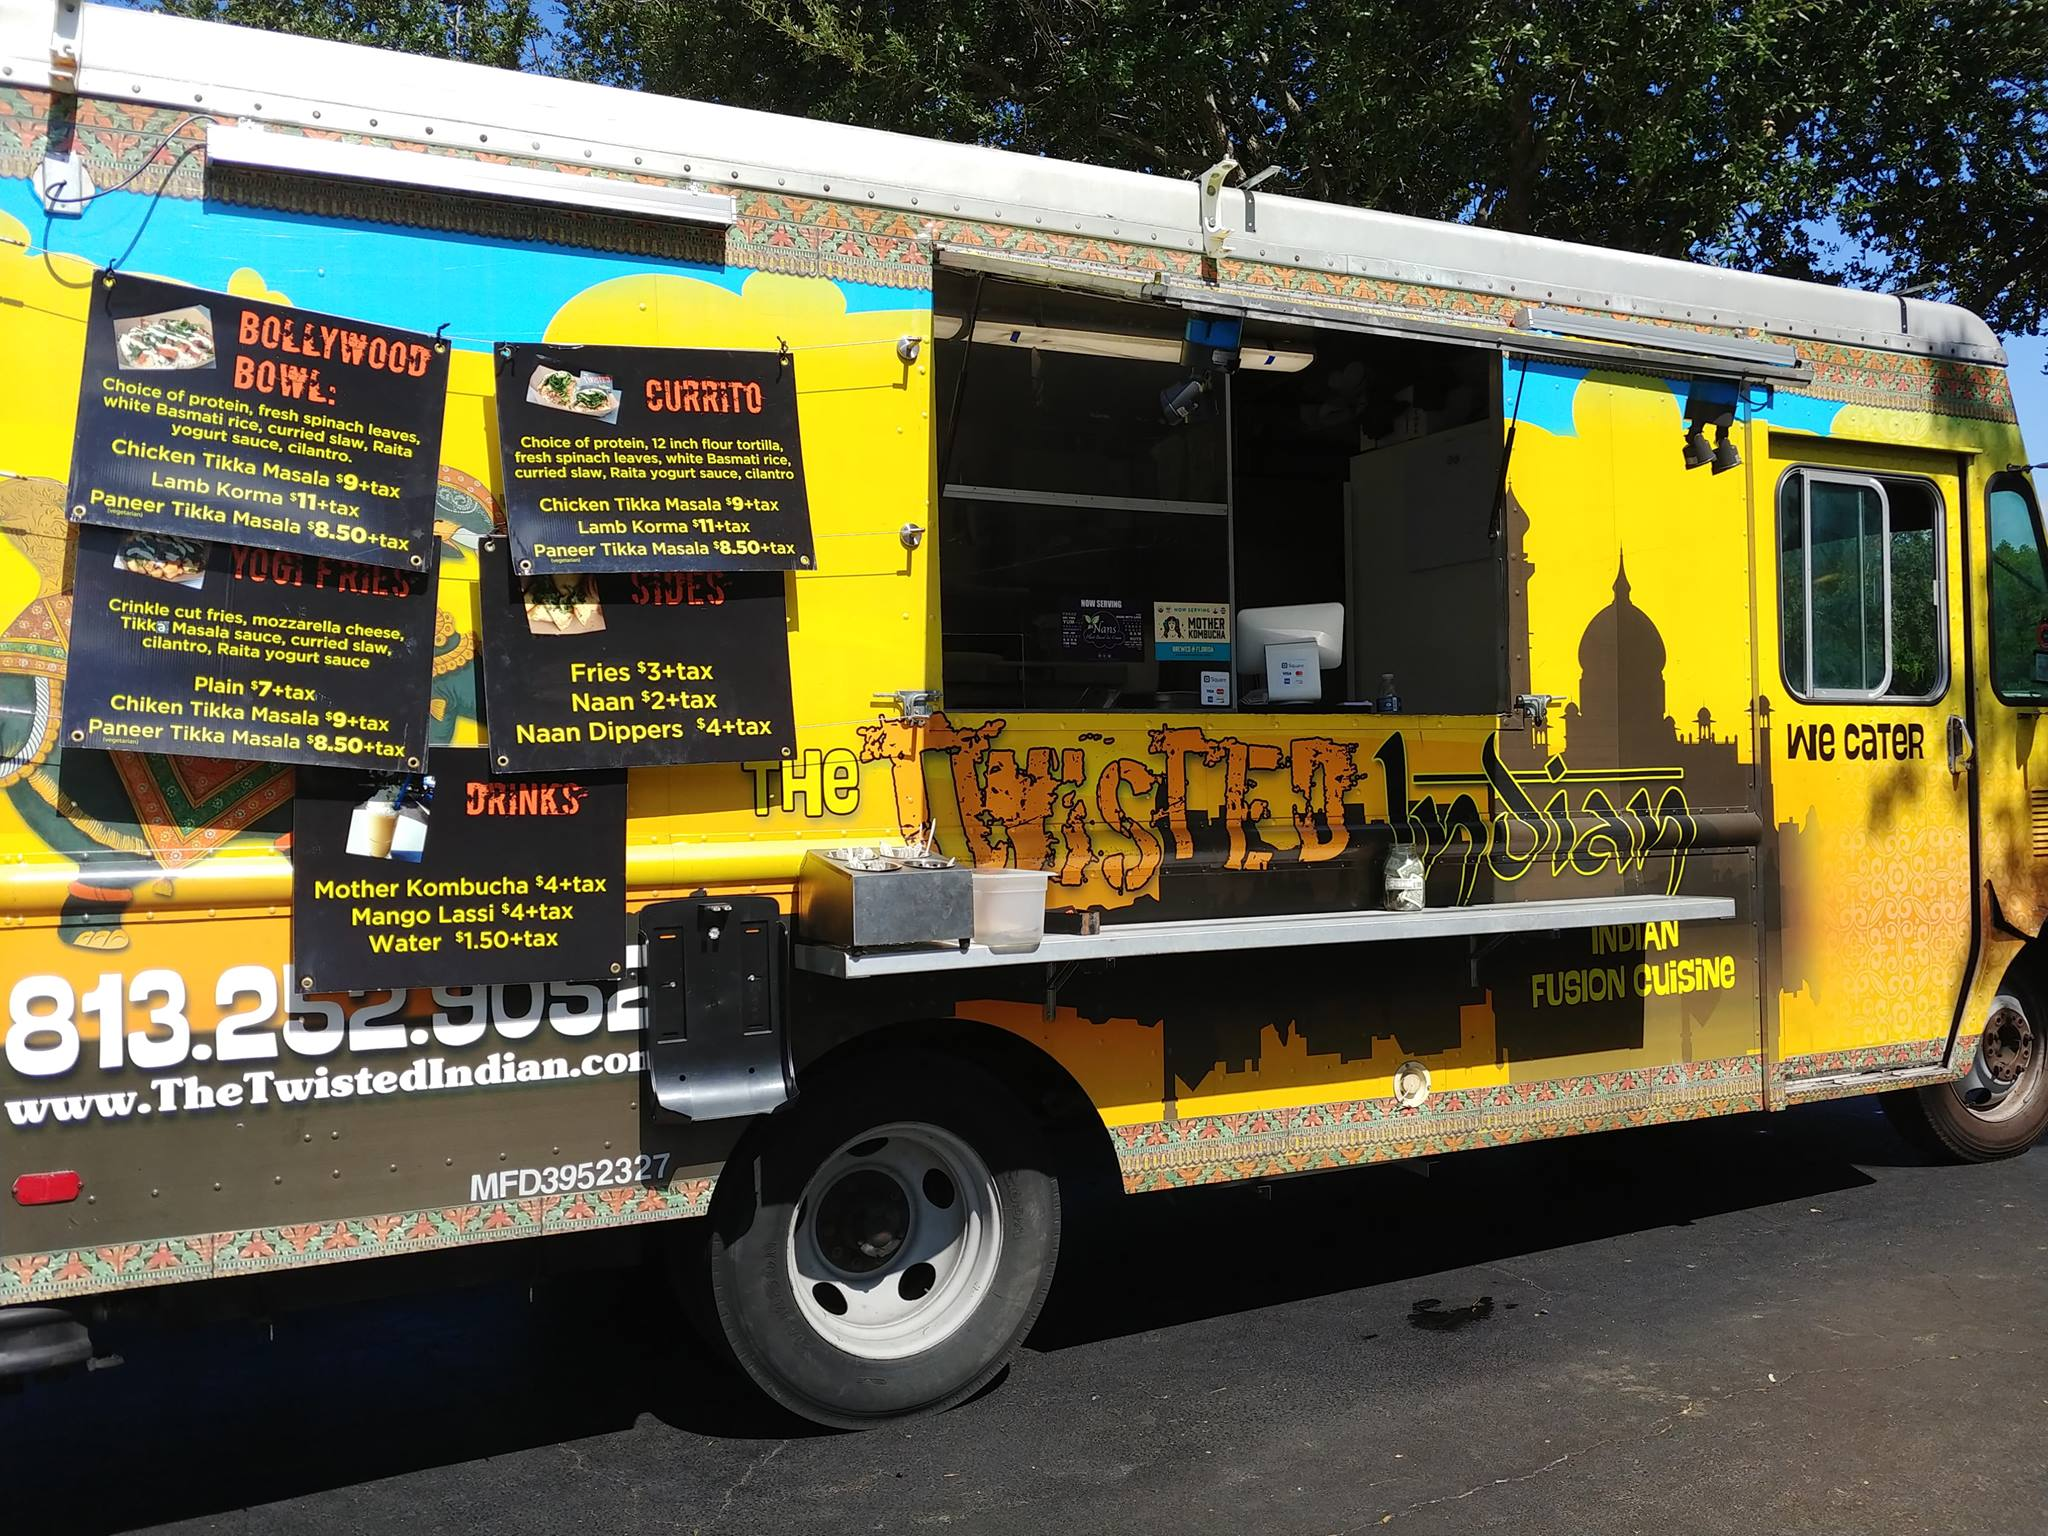 The Twisted Indian Food Truck. Available Every week at the Saturday Morning Market in Downtown St Pete